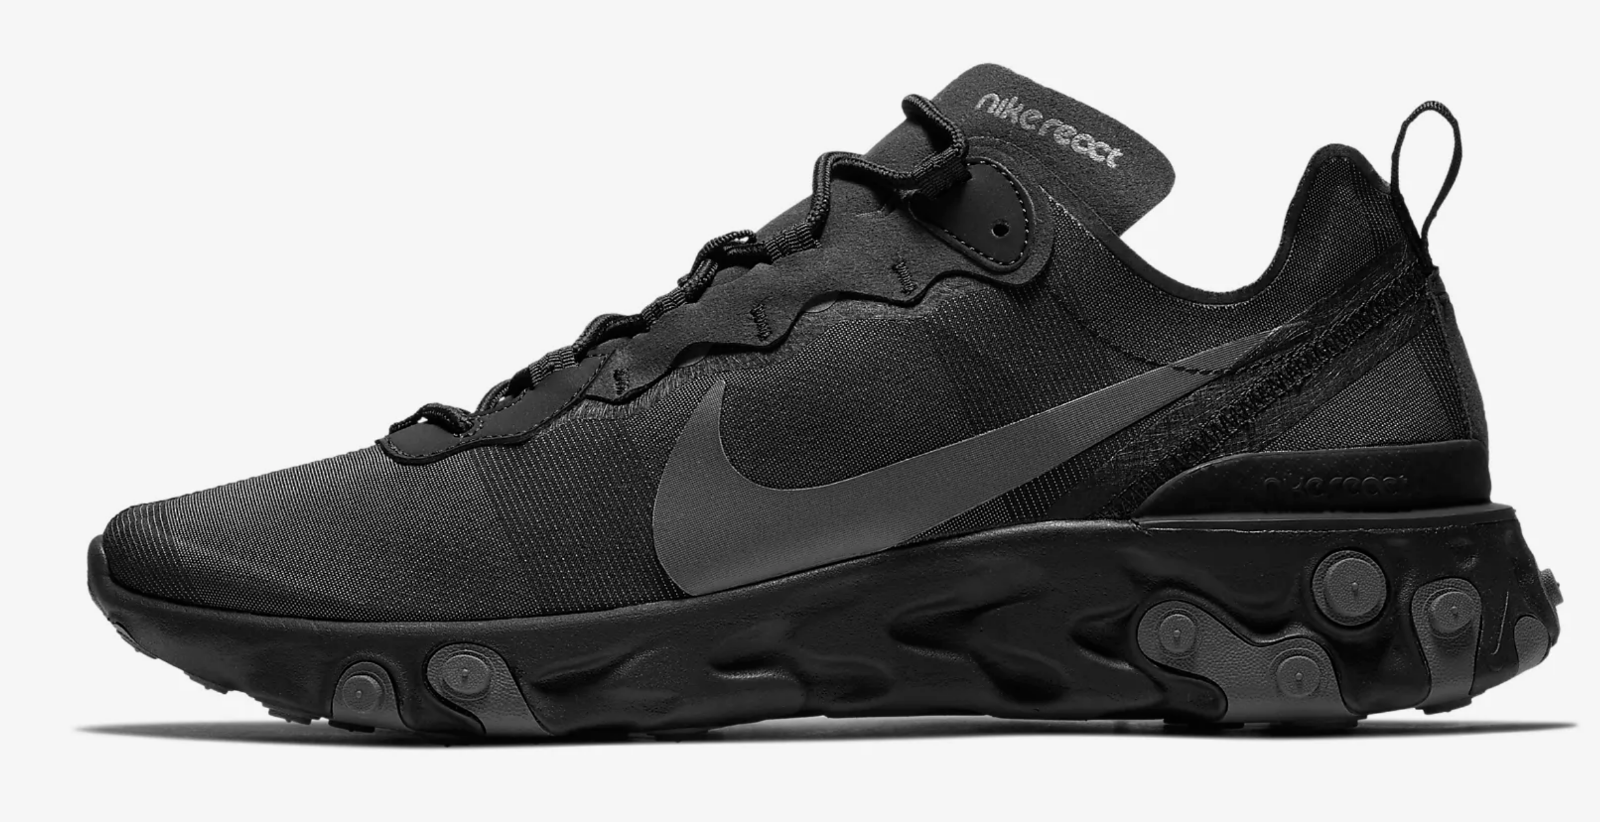 Nike React Element 55   Black Dark Grey  Men's shoes Limited Stock UK 14